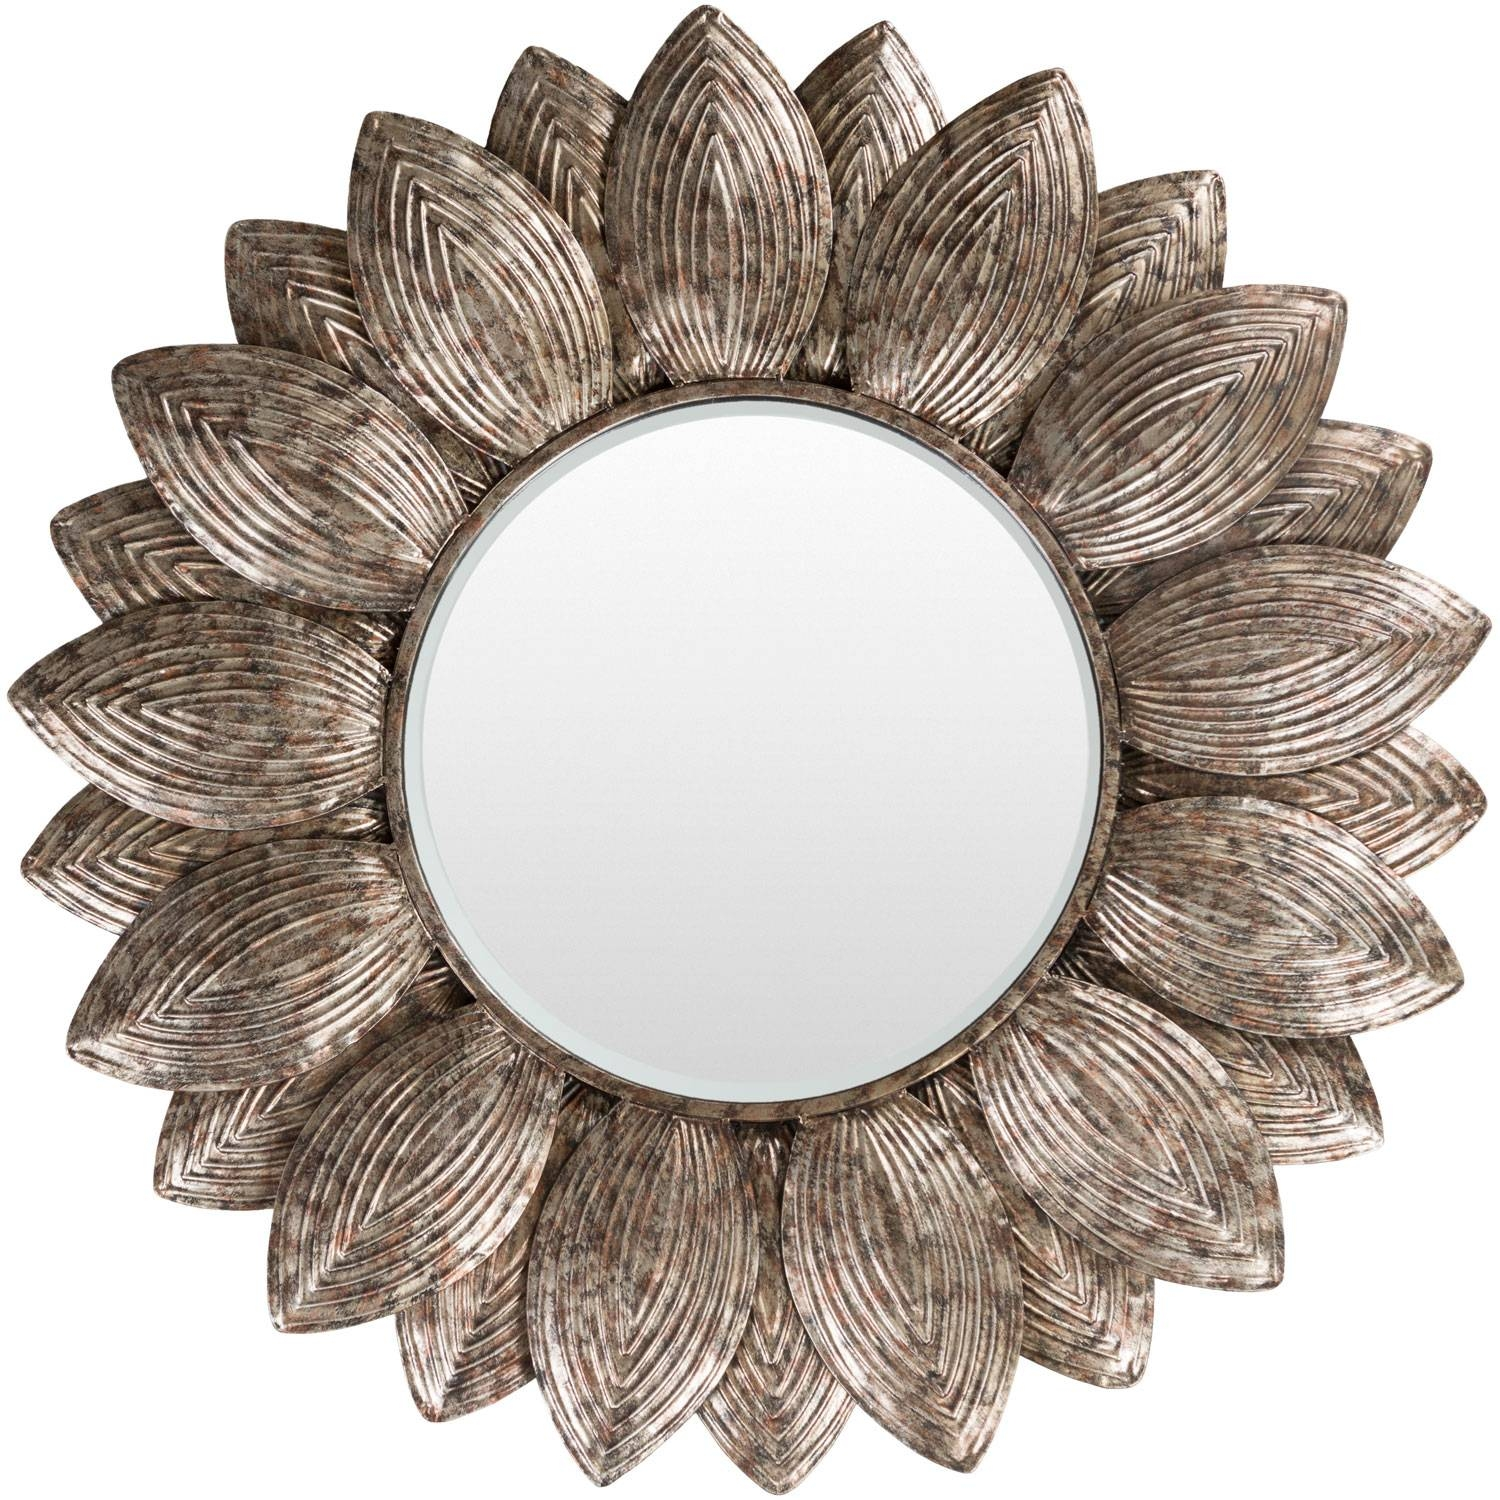 Helios Champagne Wall Mirror Surya Wall Mirror Mirrors Home Decor with Champagne Wall Mirrors (Image 10 of 25)